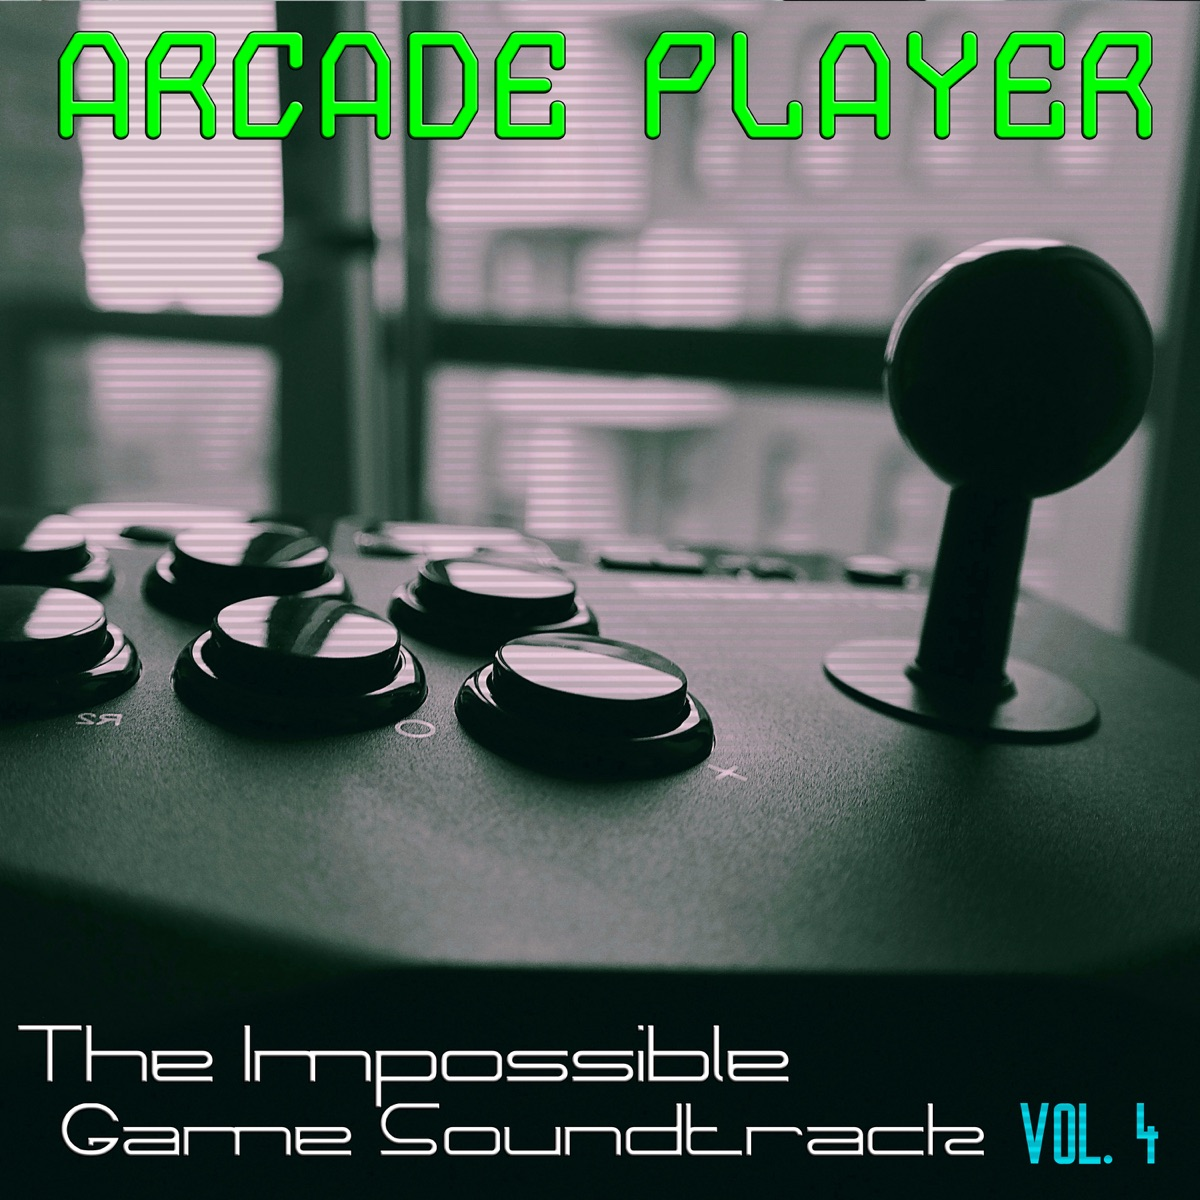 The Impossible Game Soundtrack Vol 4 Arcade Player CD cover